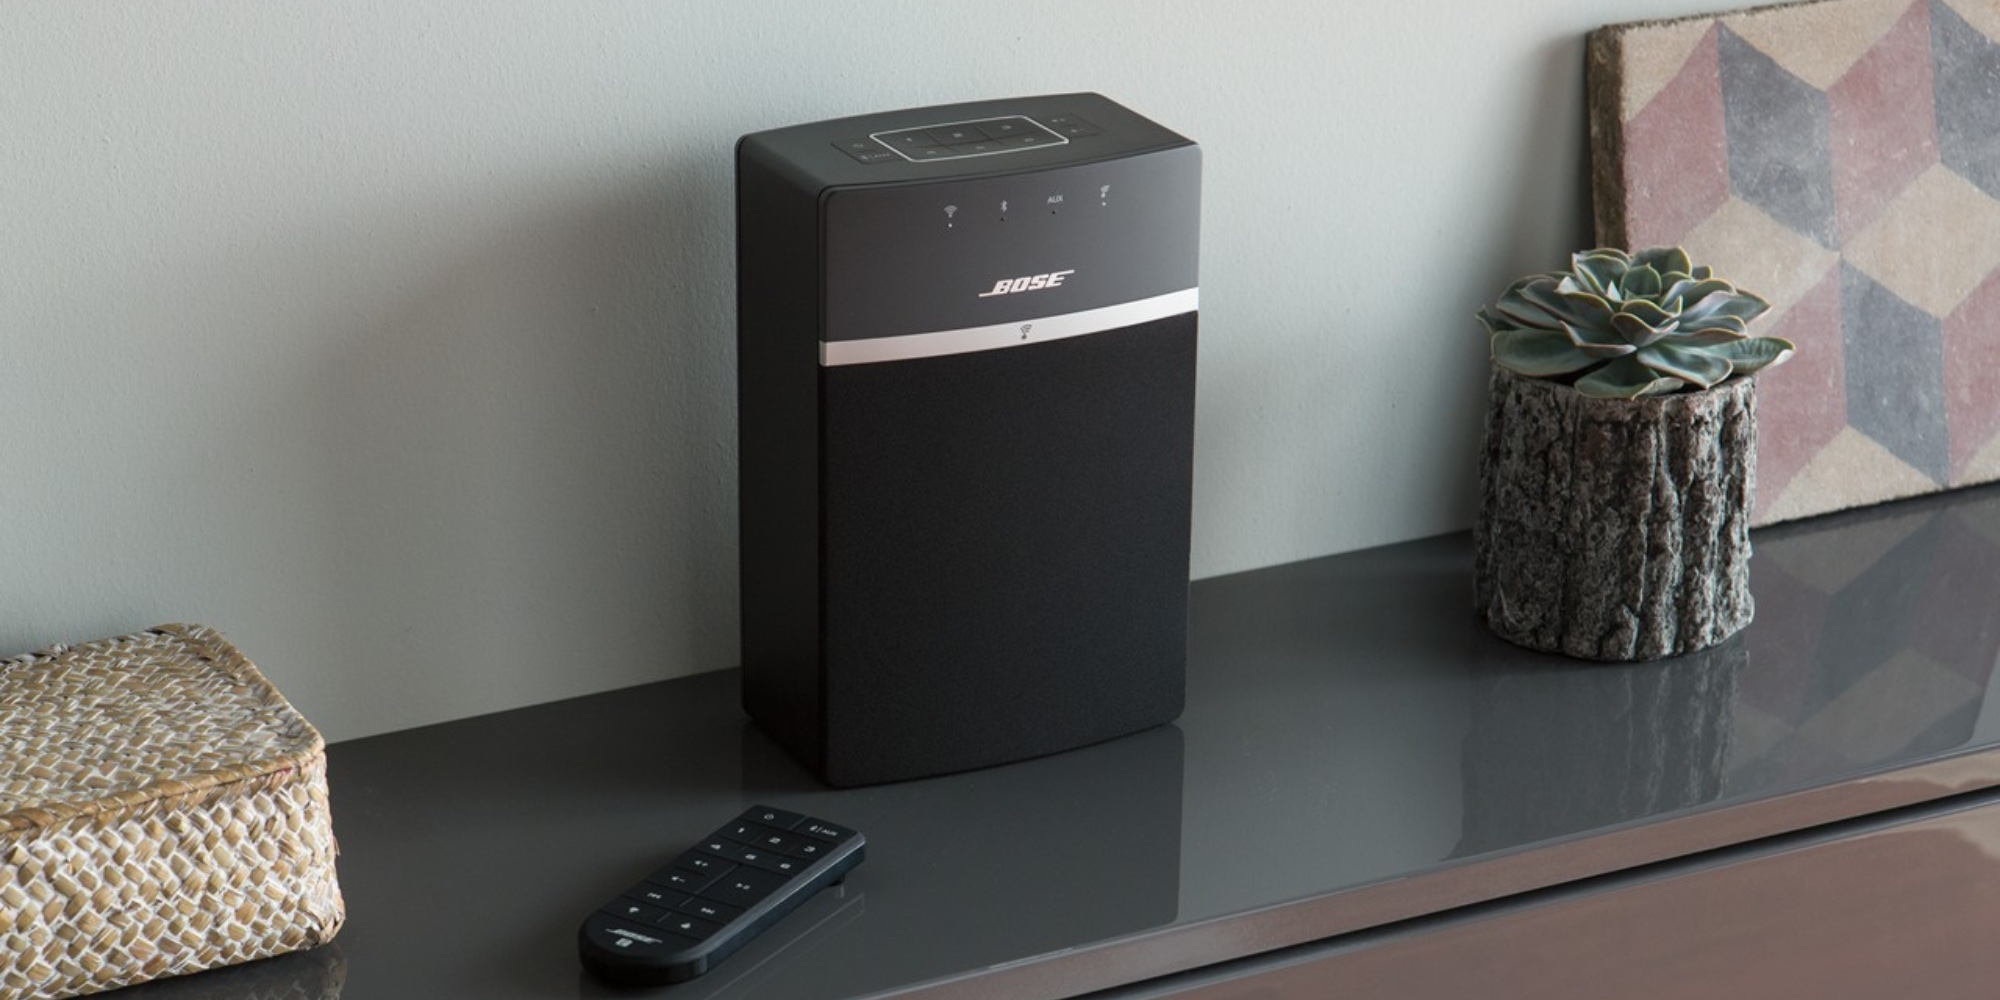 Bose SoundTouch 10 Wireless Speaker returns to all-time low at $100 (Save $99) - 9to5Toys